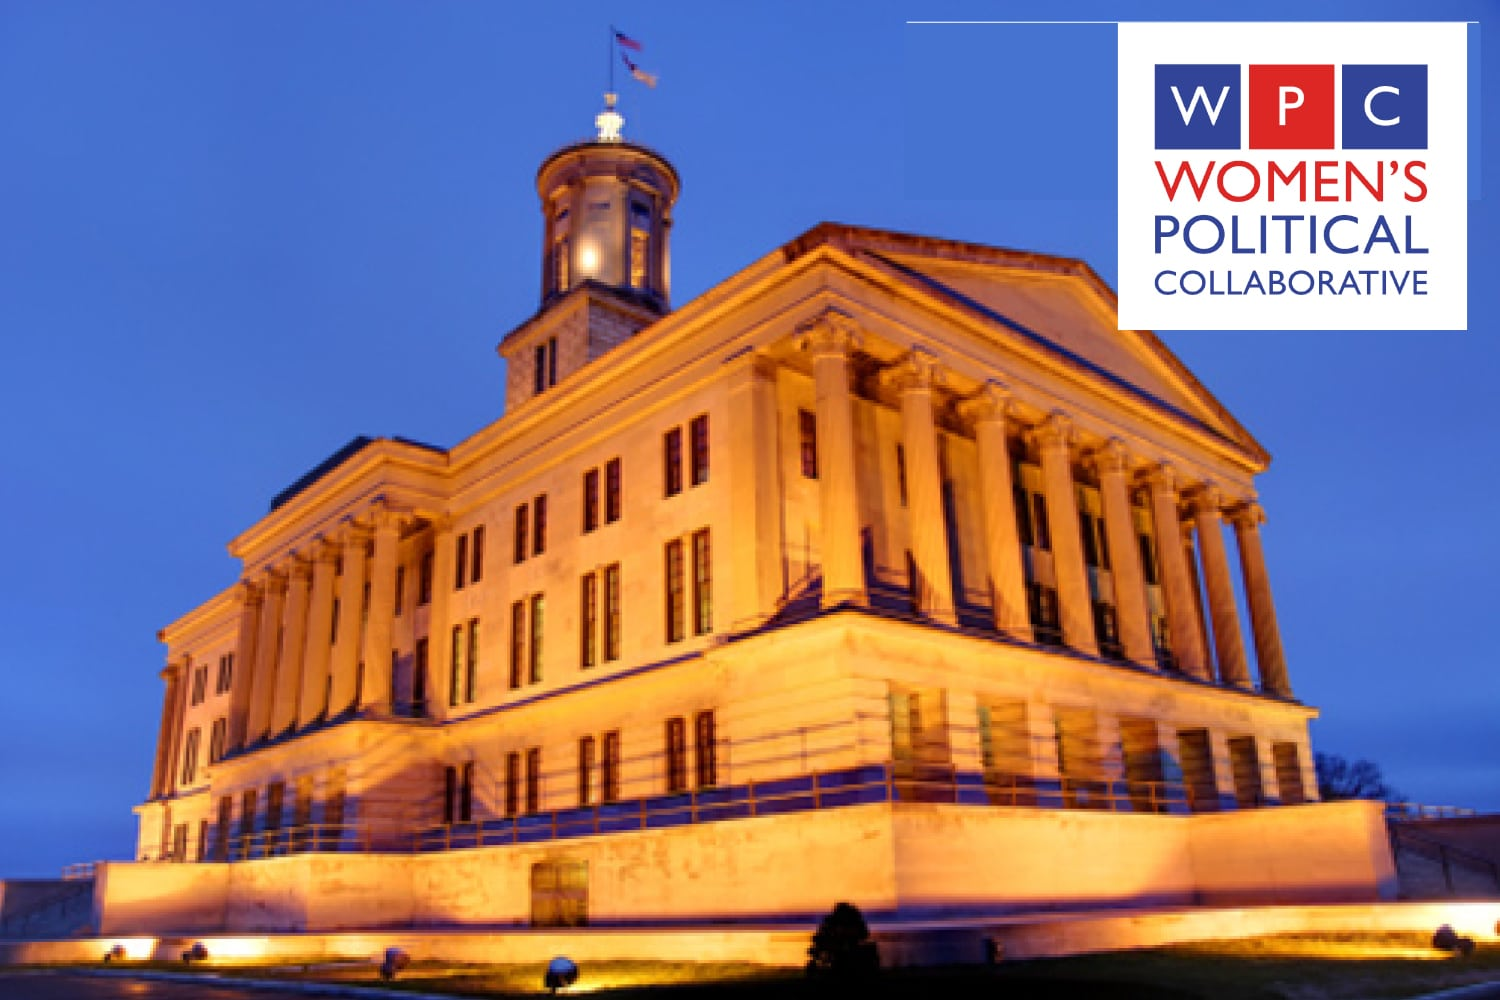 Tennessee Women's Advocacy Day is February 26